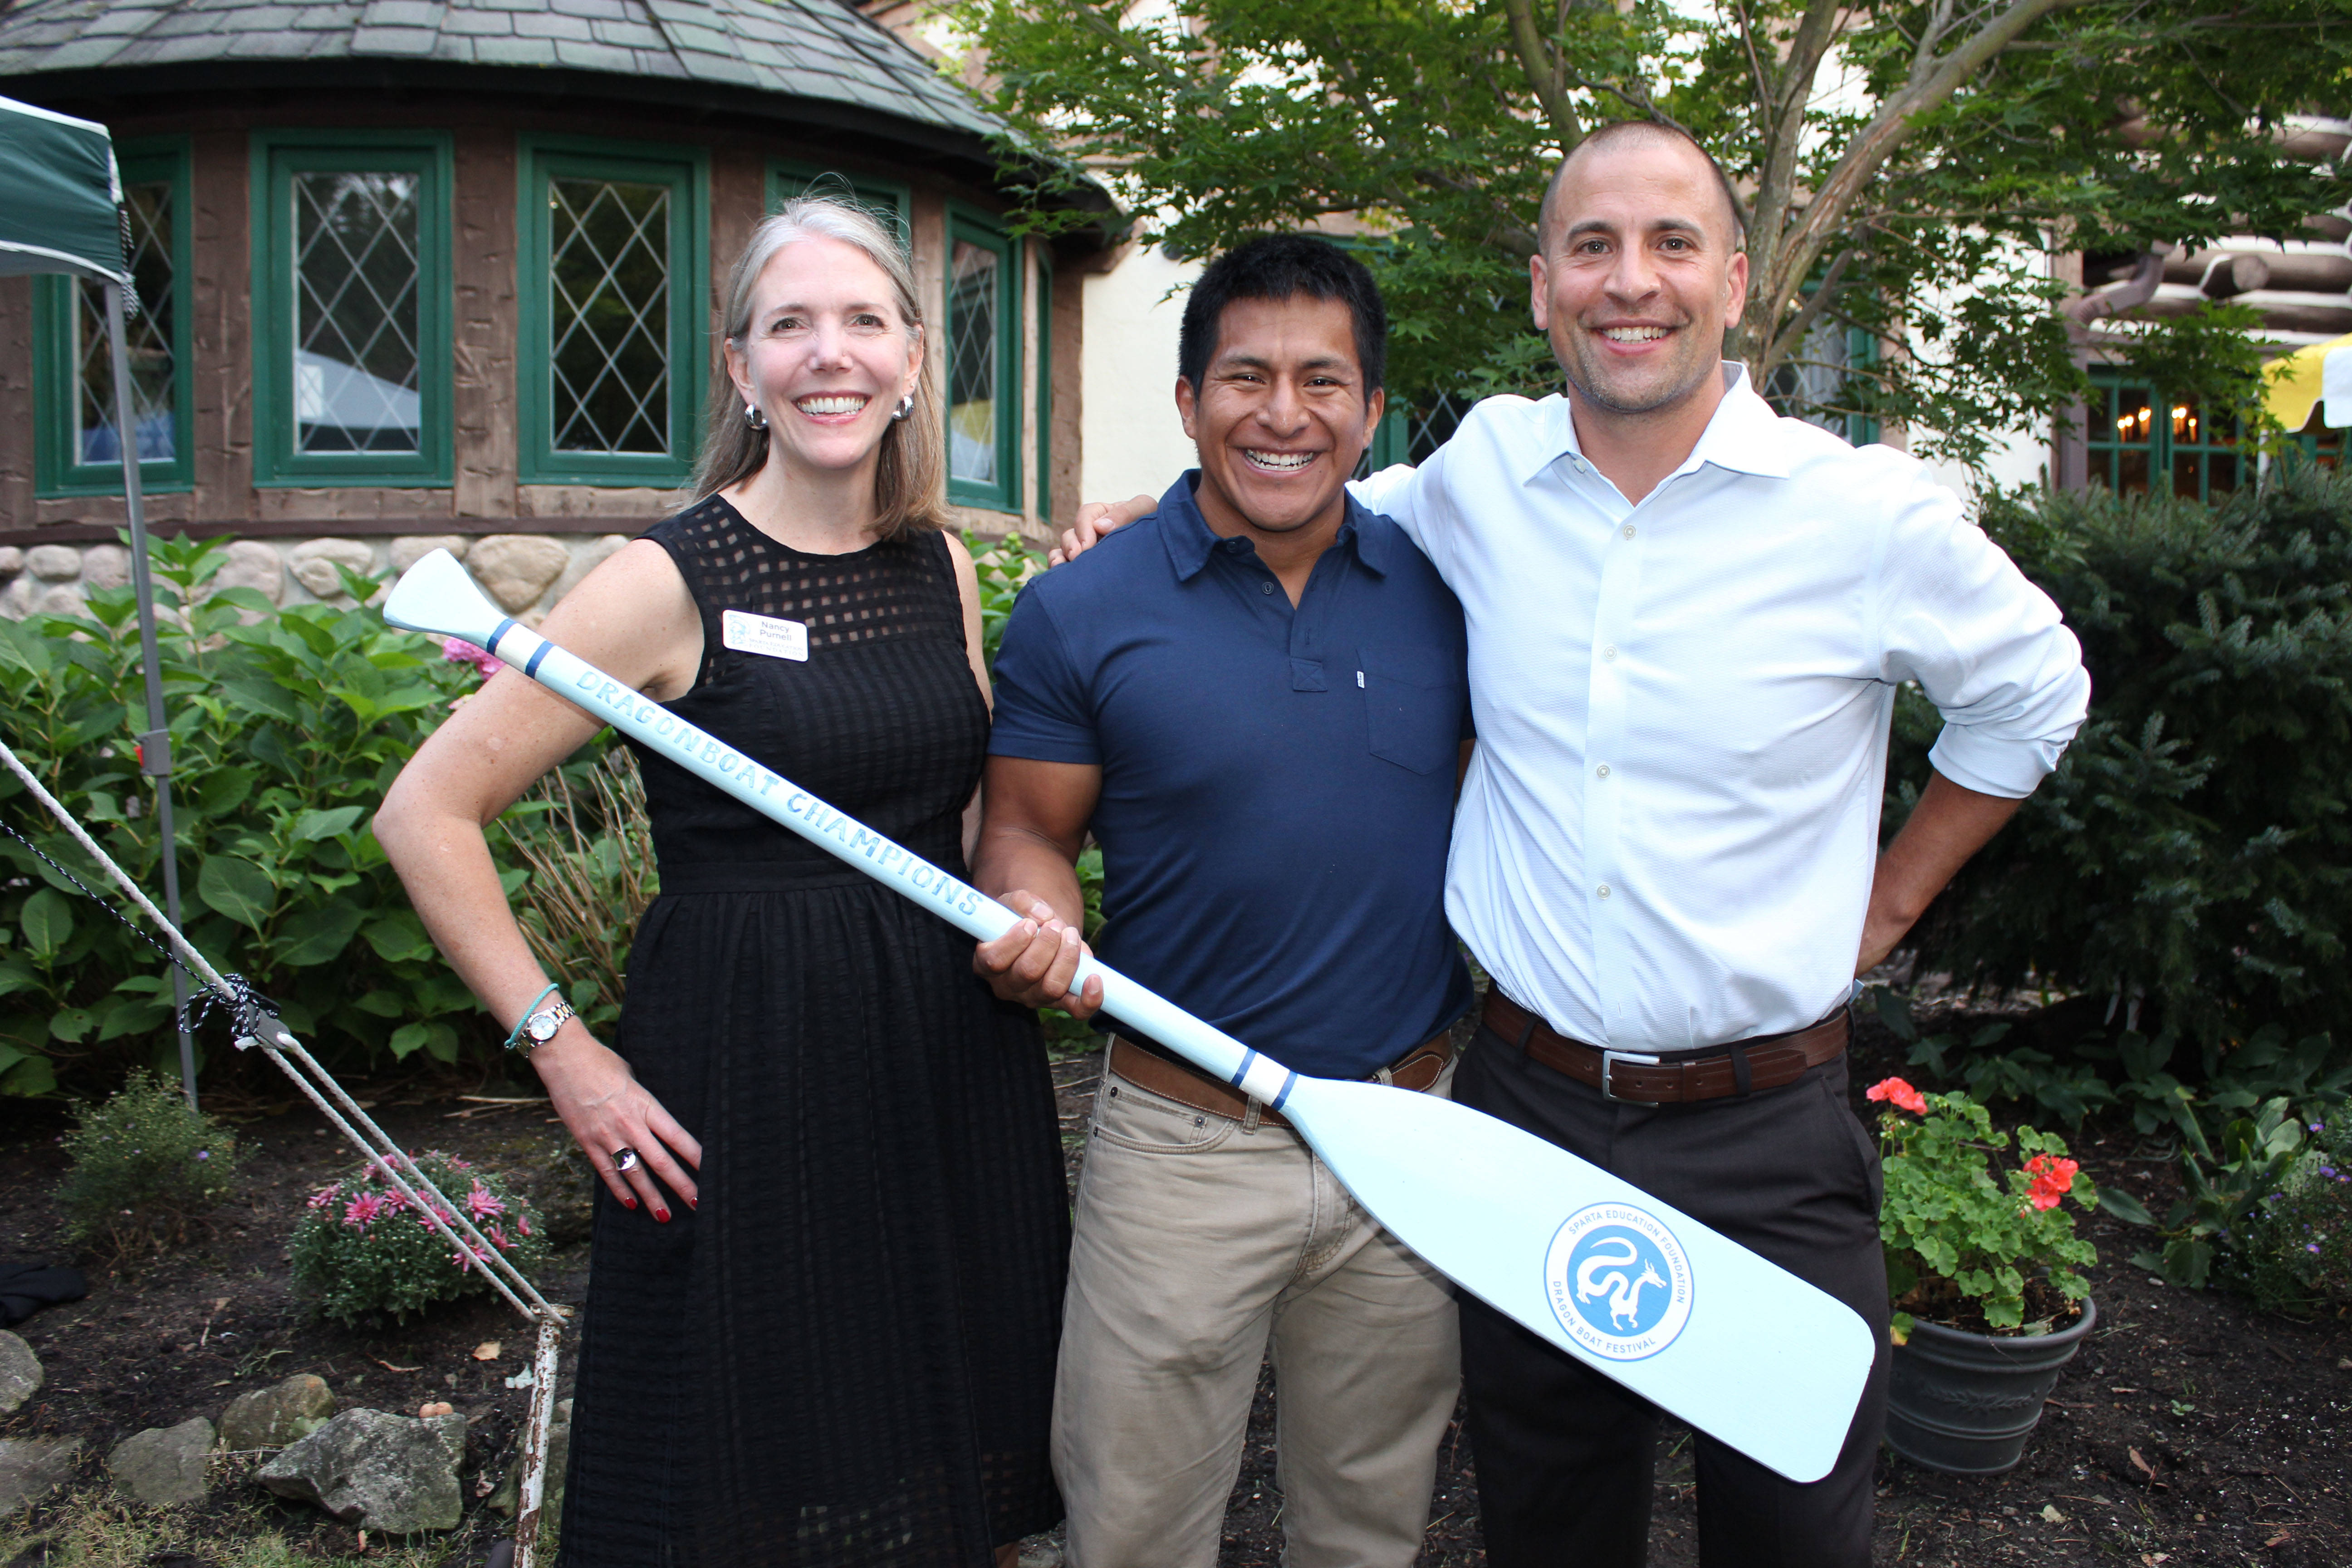 ca12a17d4fc684d80922_Dragon_Boat_Festival_Chairs_Nancy_Purnell_and_Doug_Layman_pass_the_2016_Award_Paddle_to_Jon_Trotta_of_Sparta_Station_Athletics_A.jpg